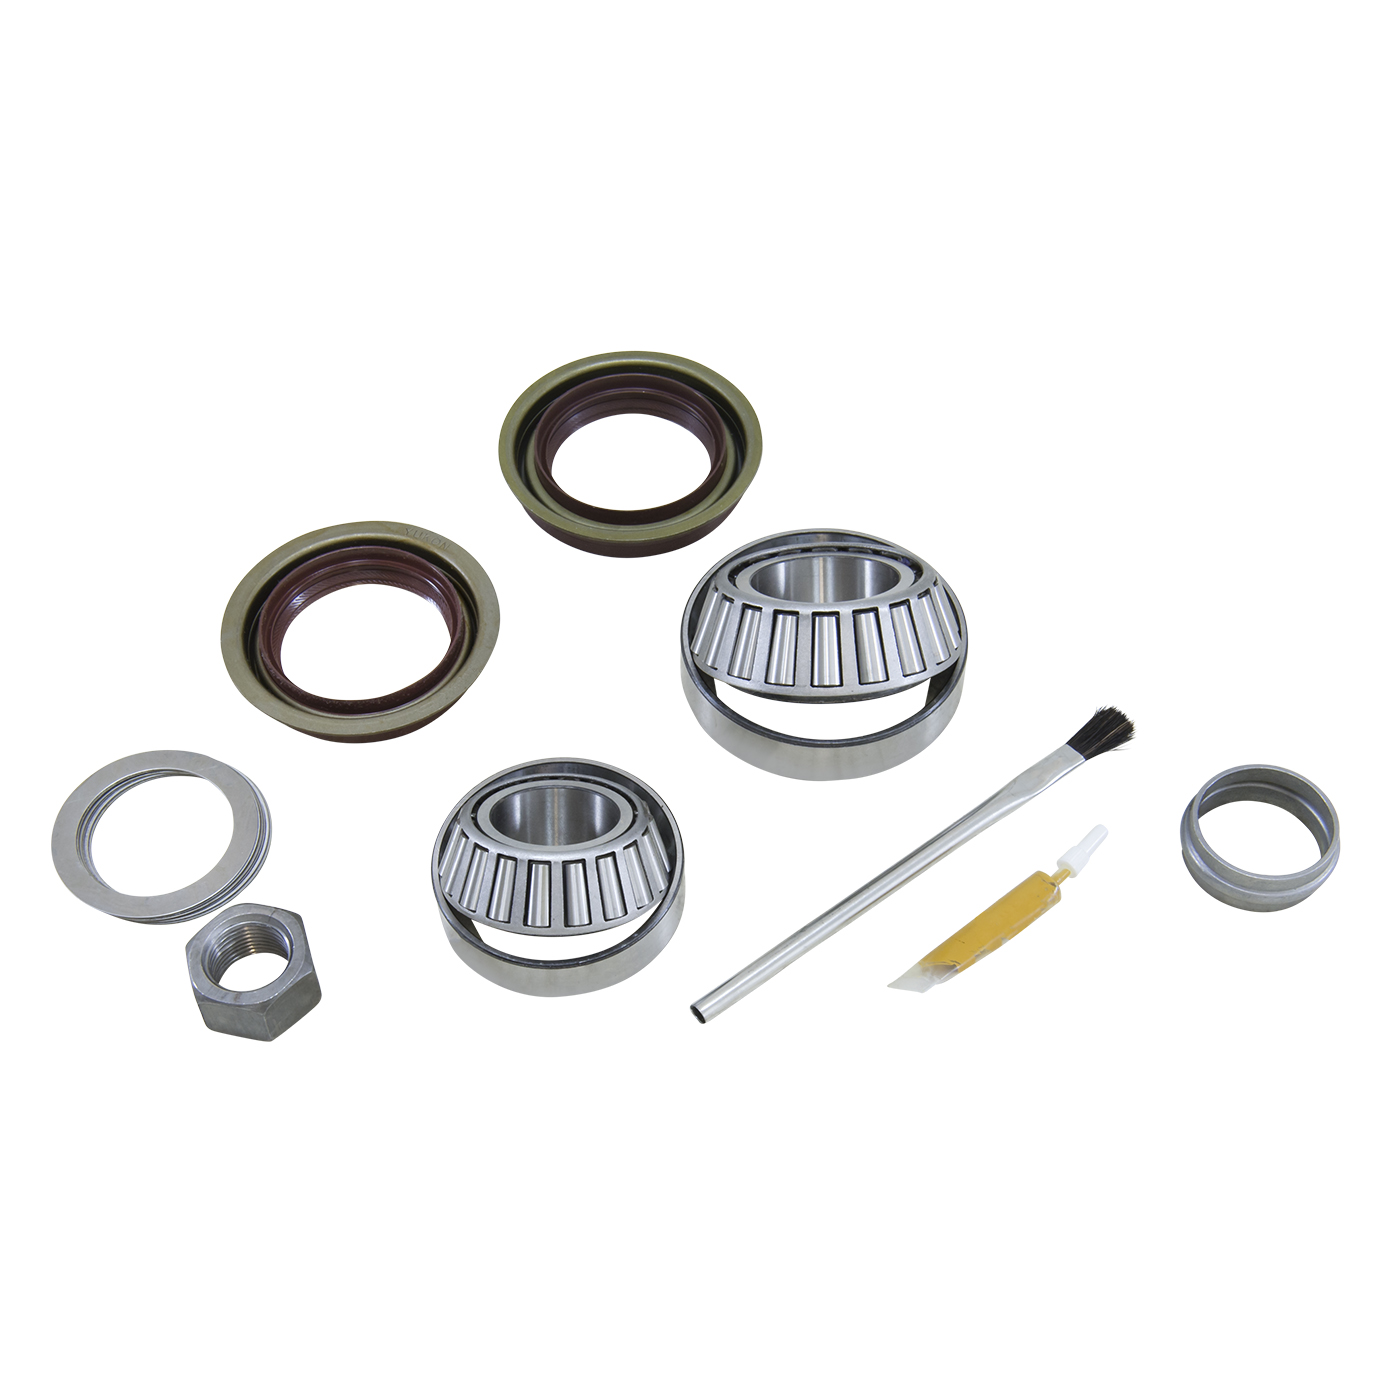 ZPKGM7.5-B - USA Standard Pinion installation kit for '82-'99 GM 7.5